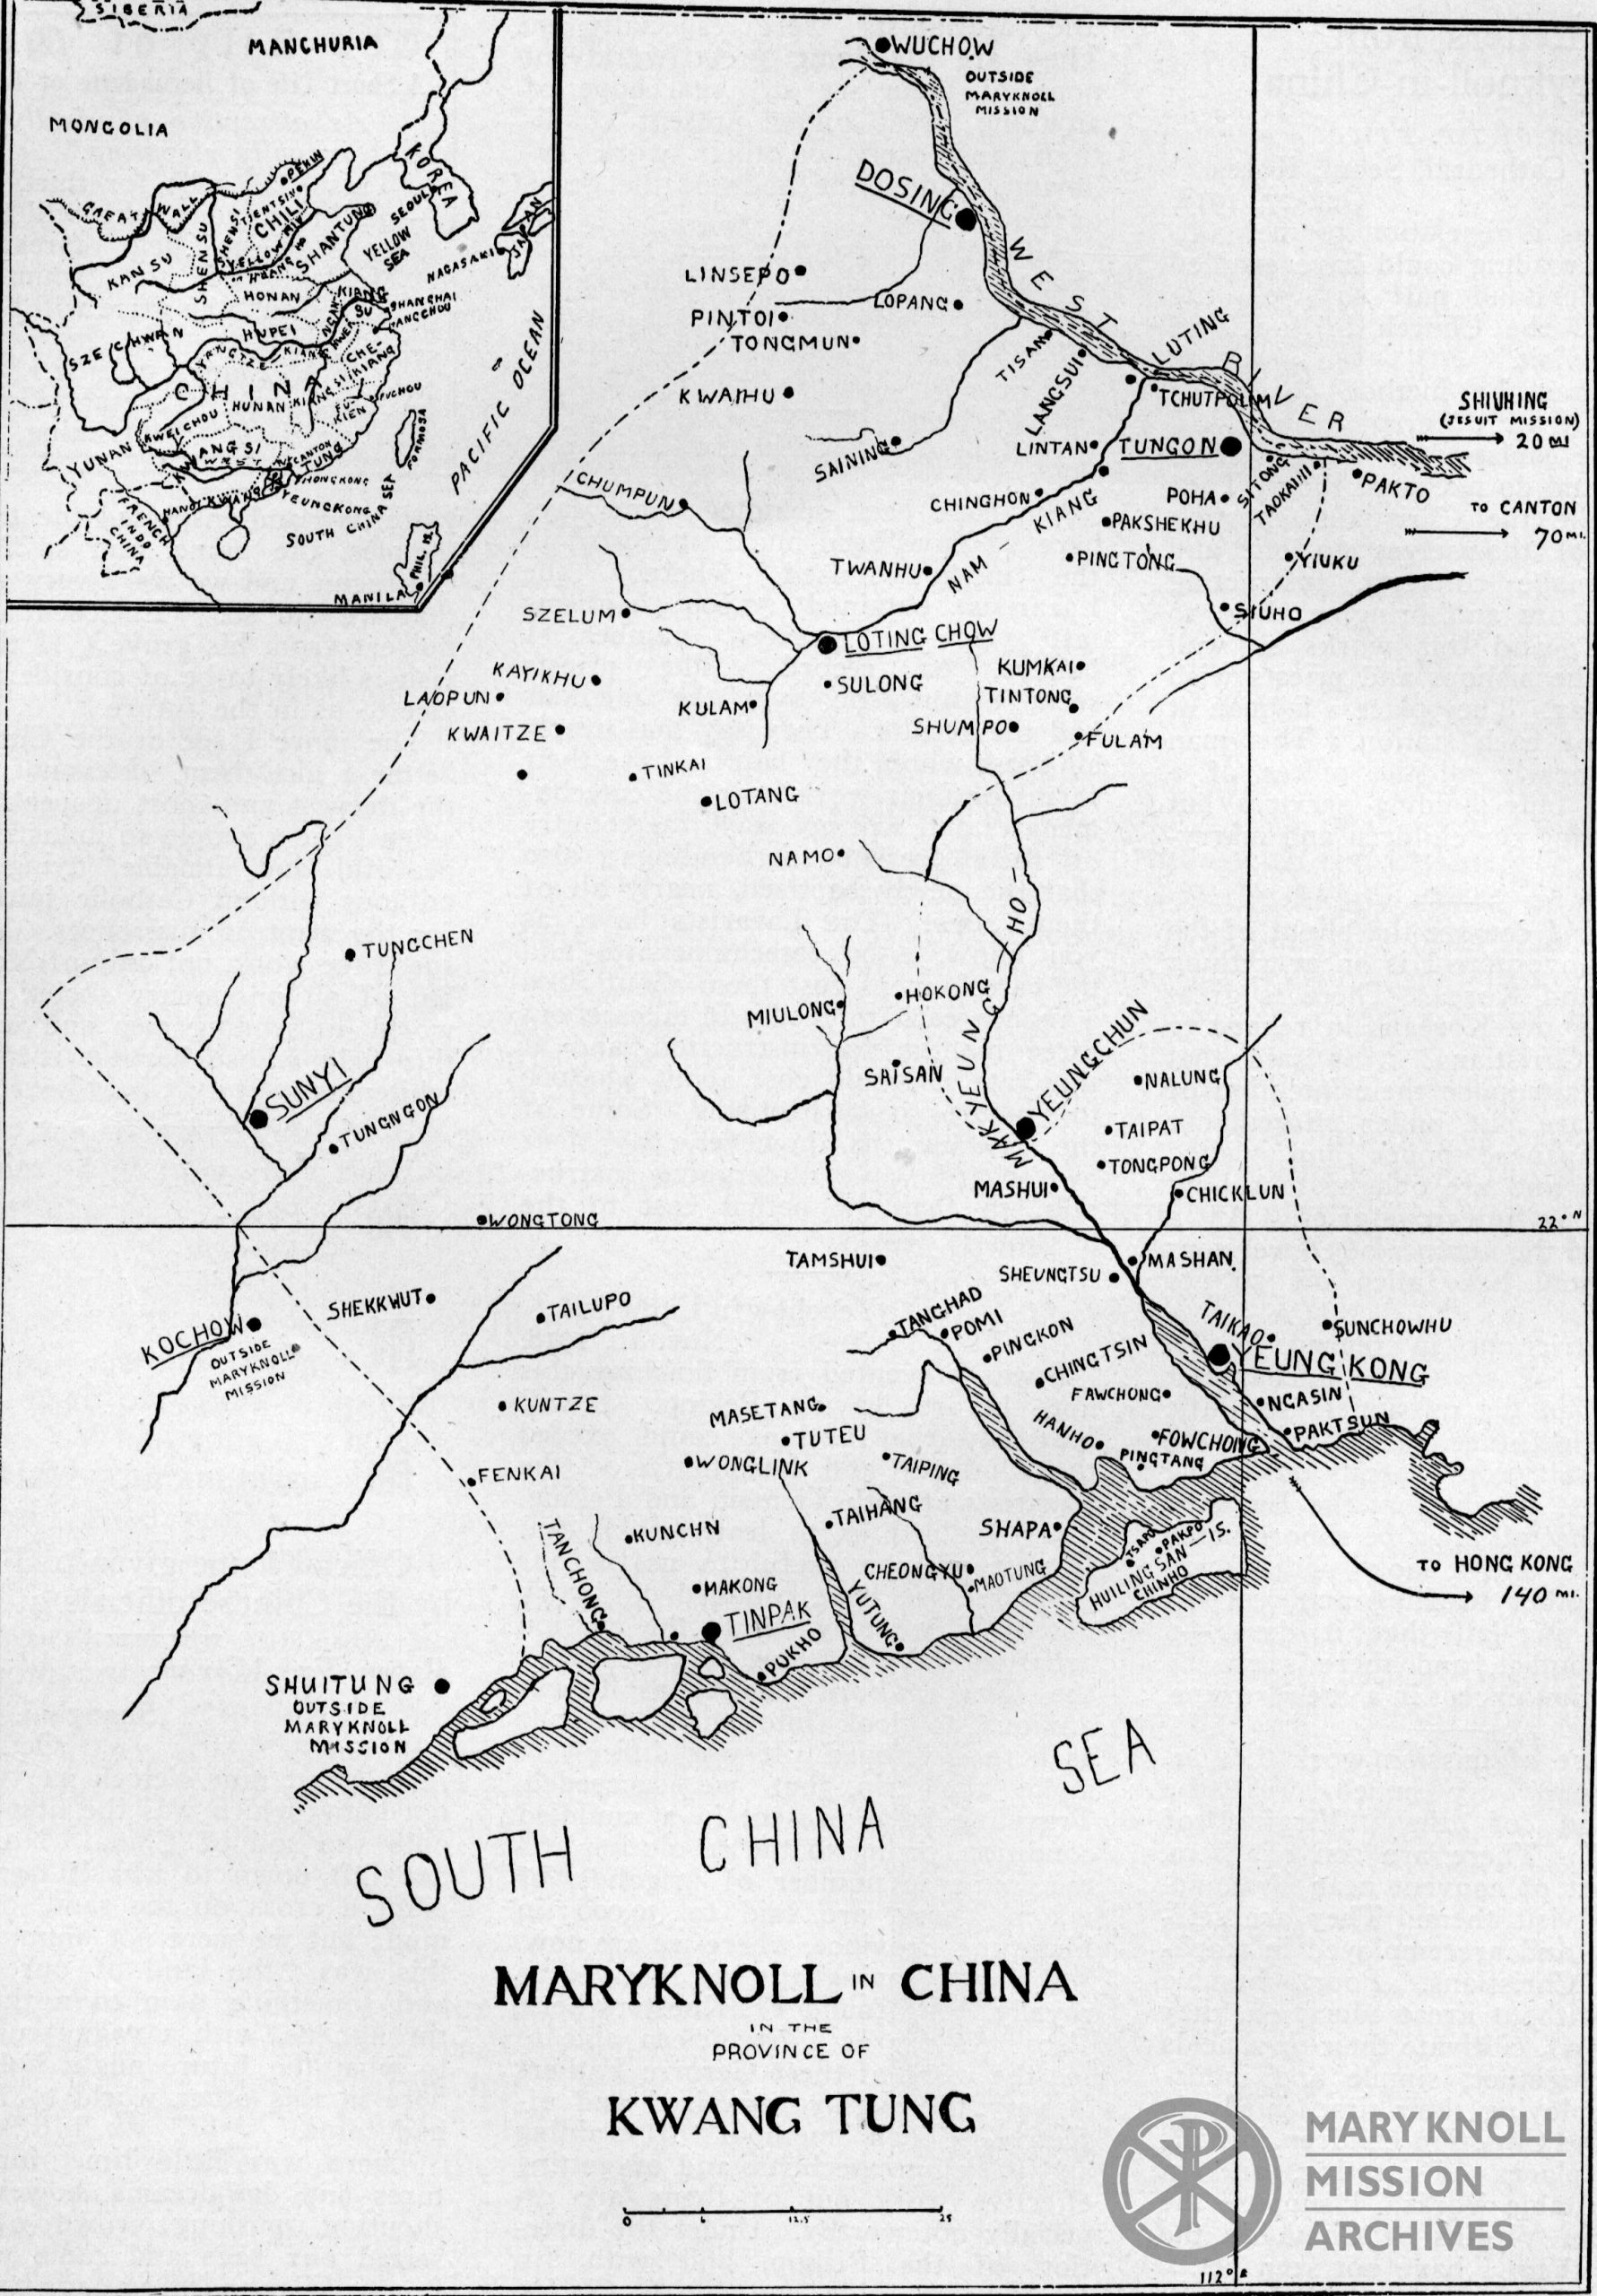 Map of Maryknoll's missions in China, 1919